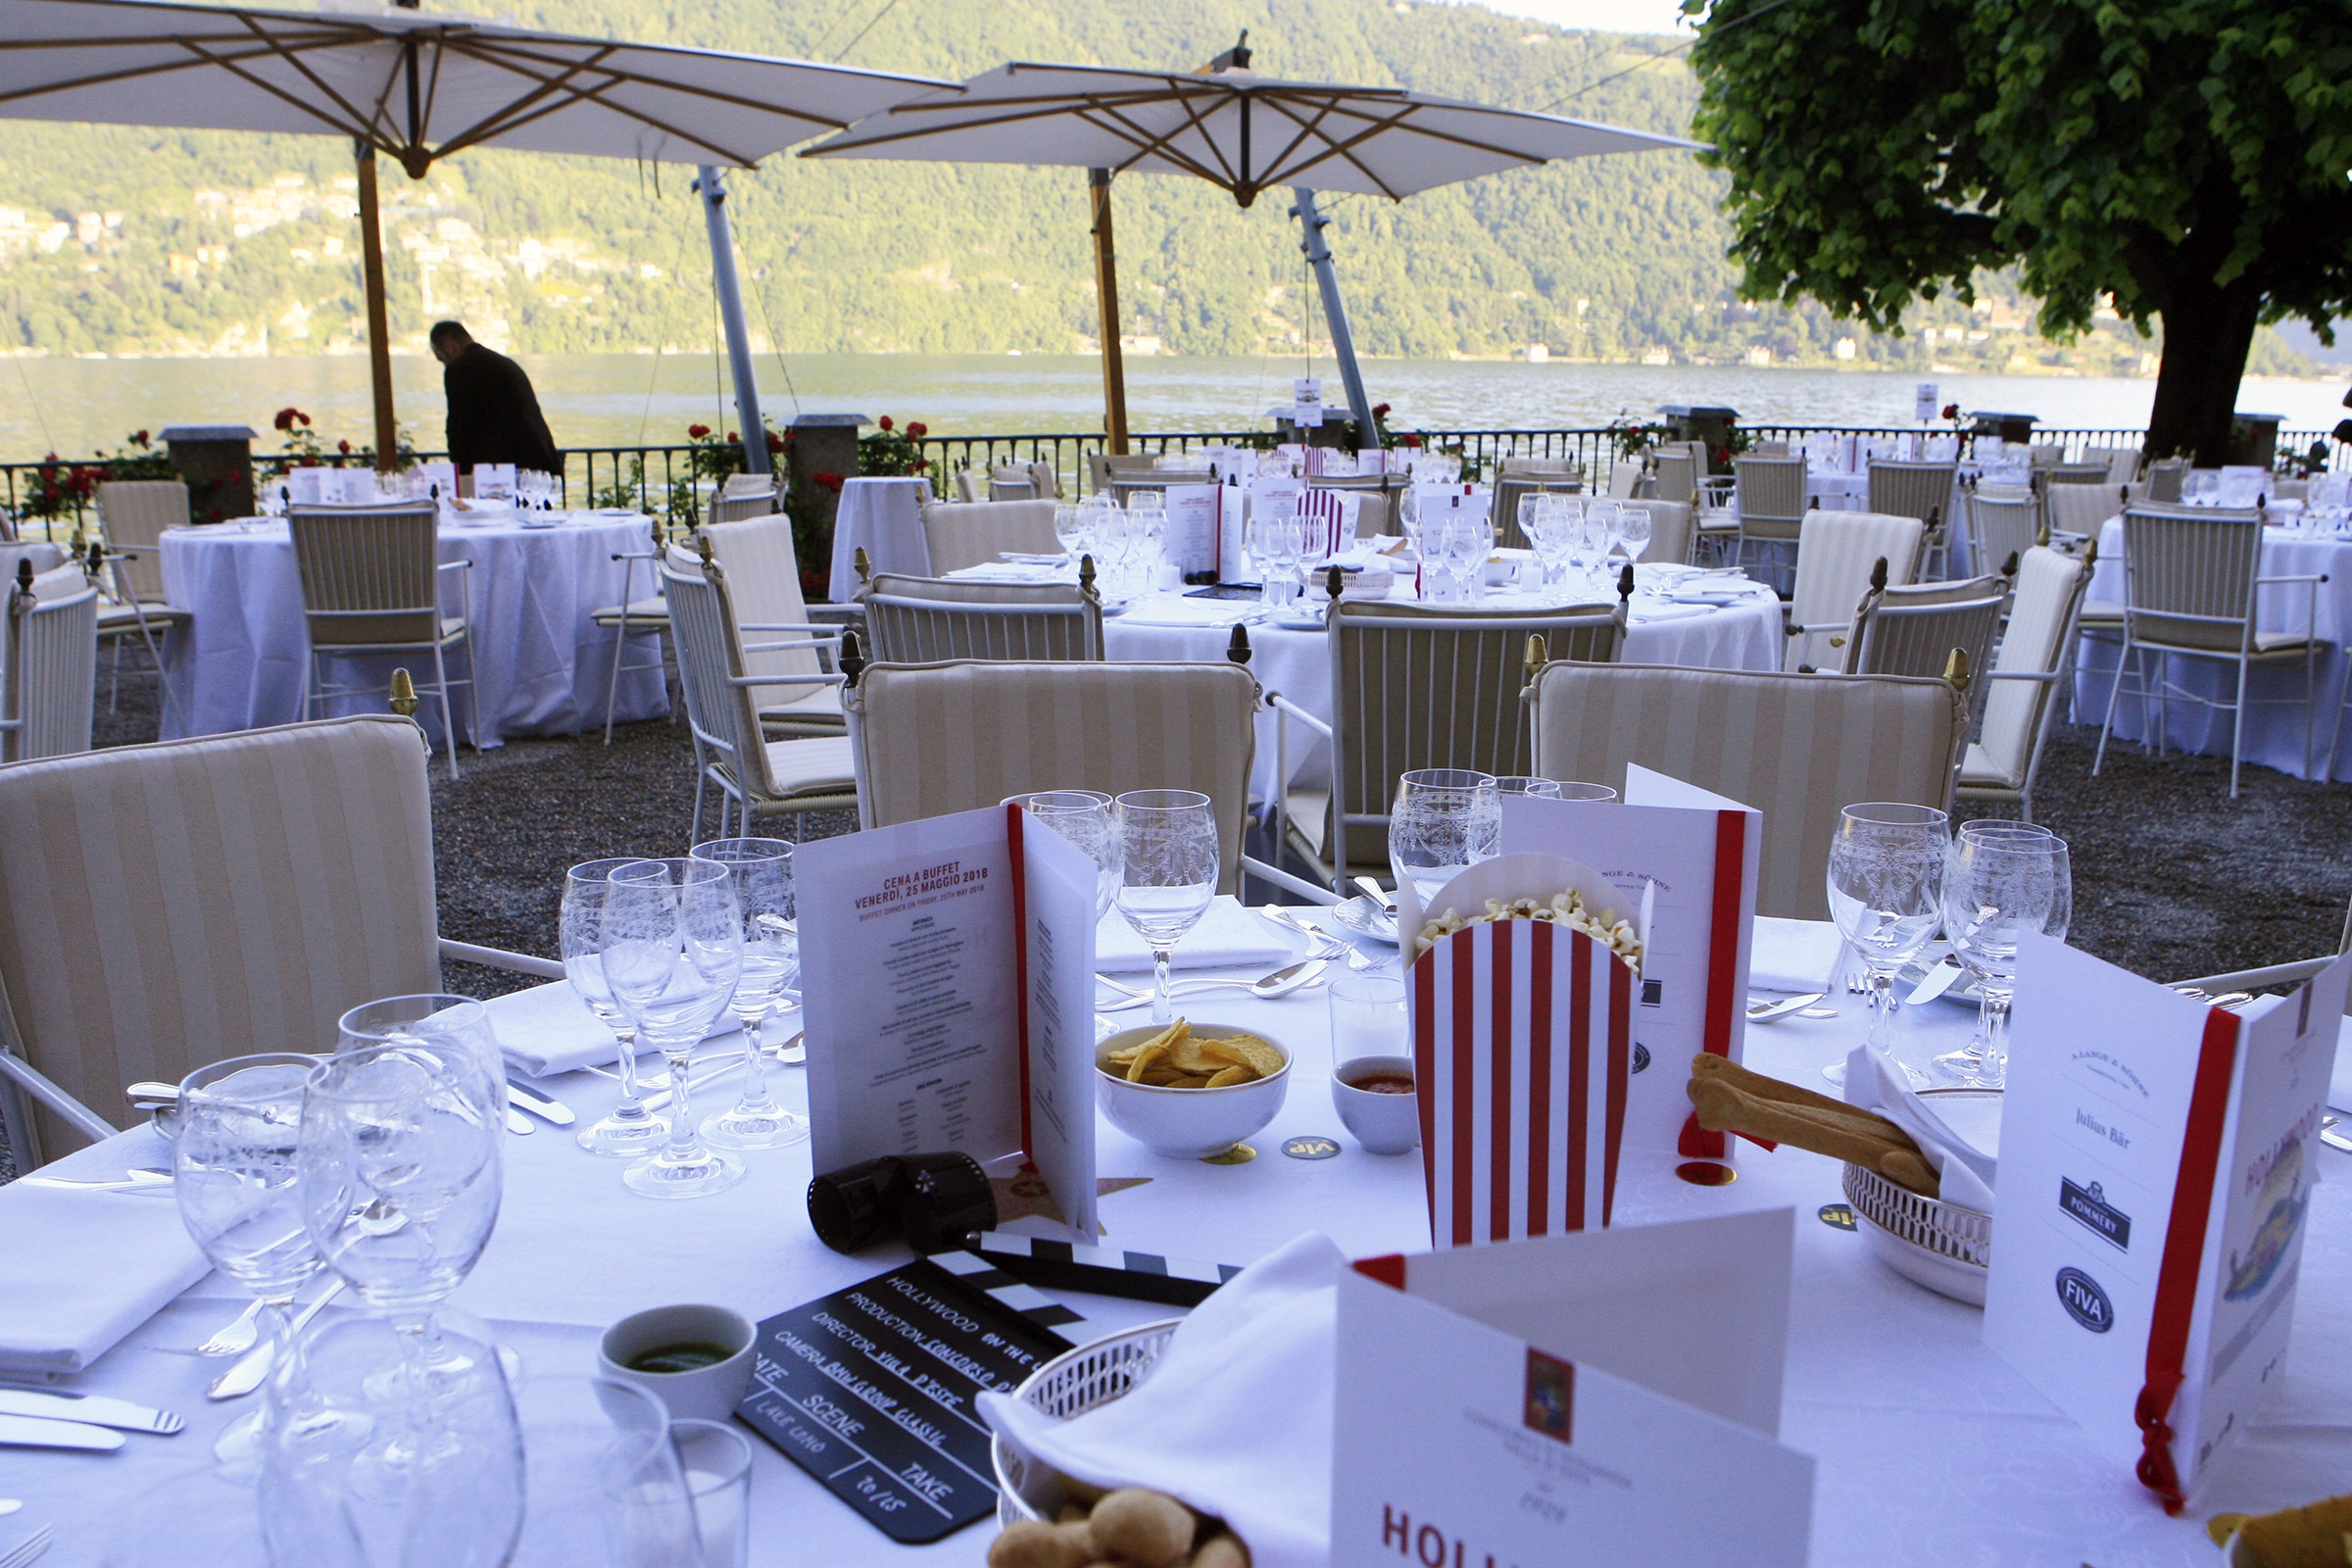 Friday ambiance - diner Concorso style